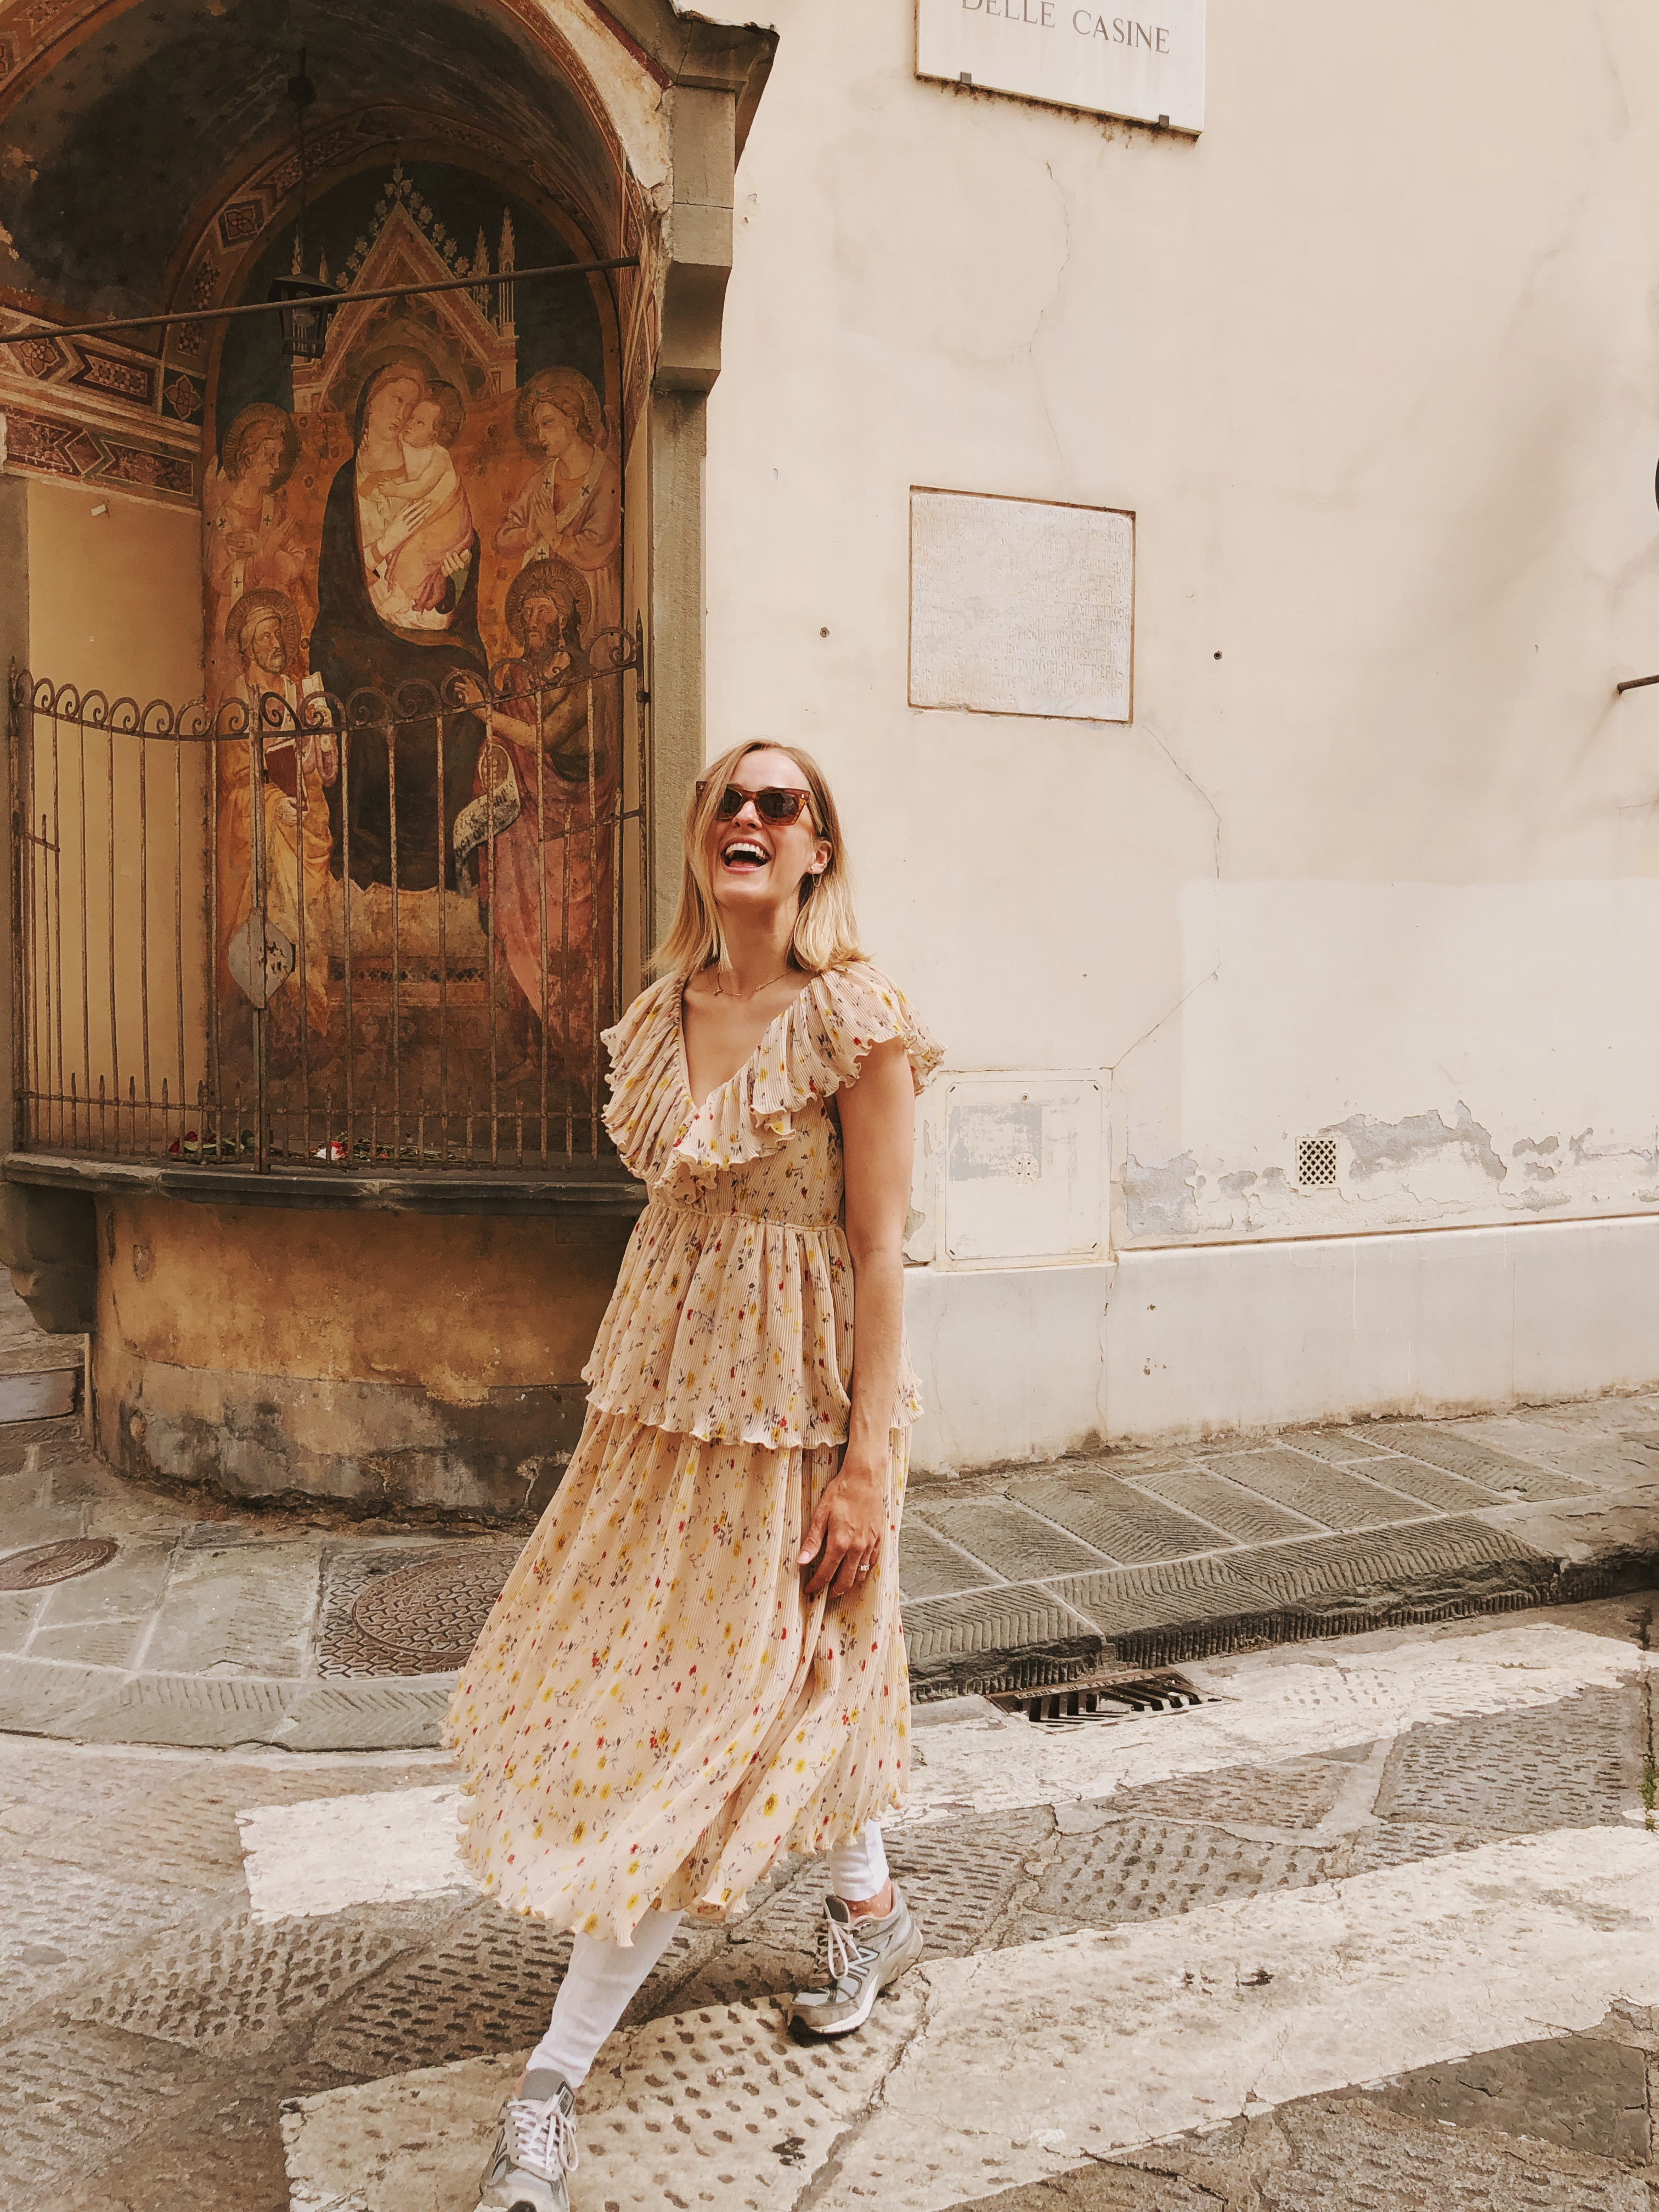 rockpaperdresses, Cathrine Widunok Wichmand, rockpapertravel, Guide til Firenze